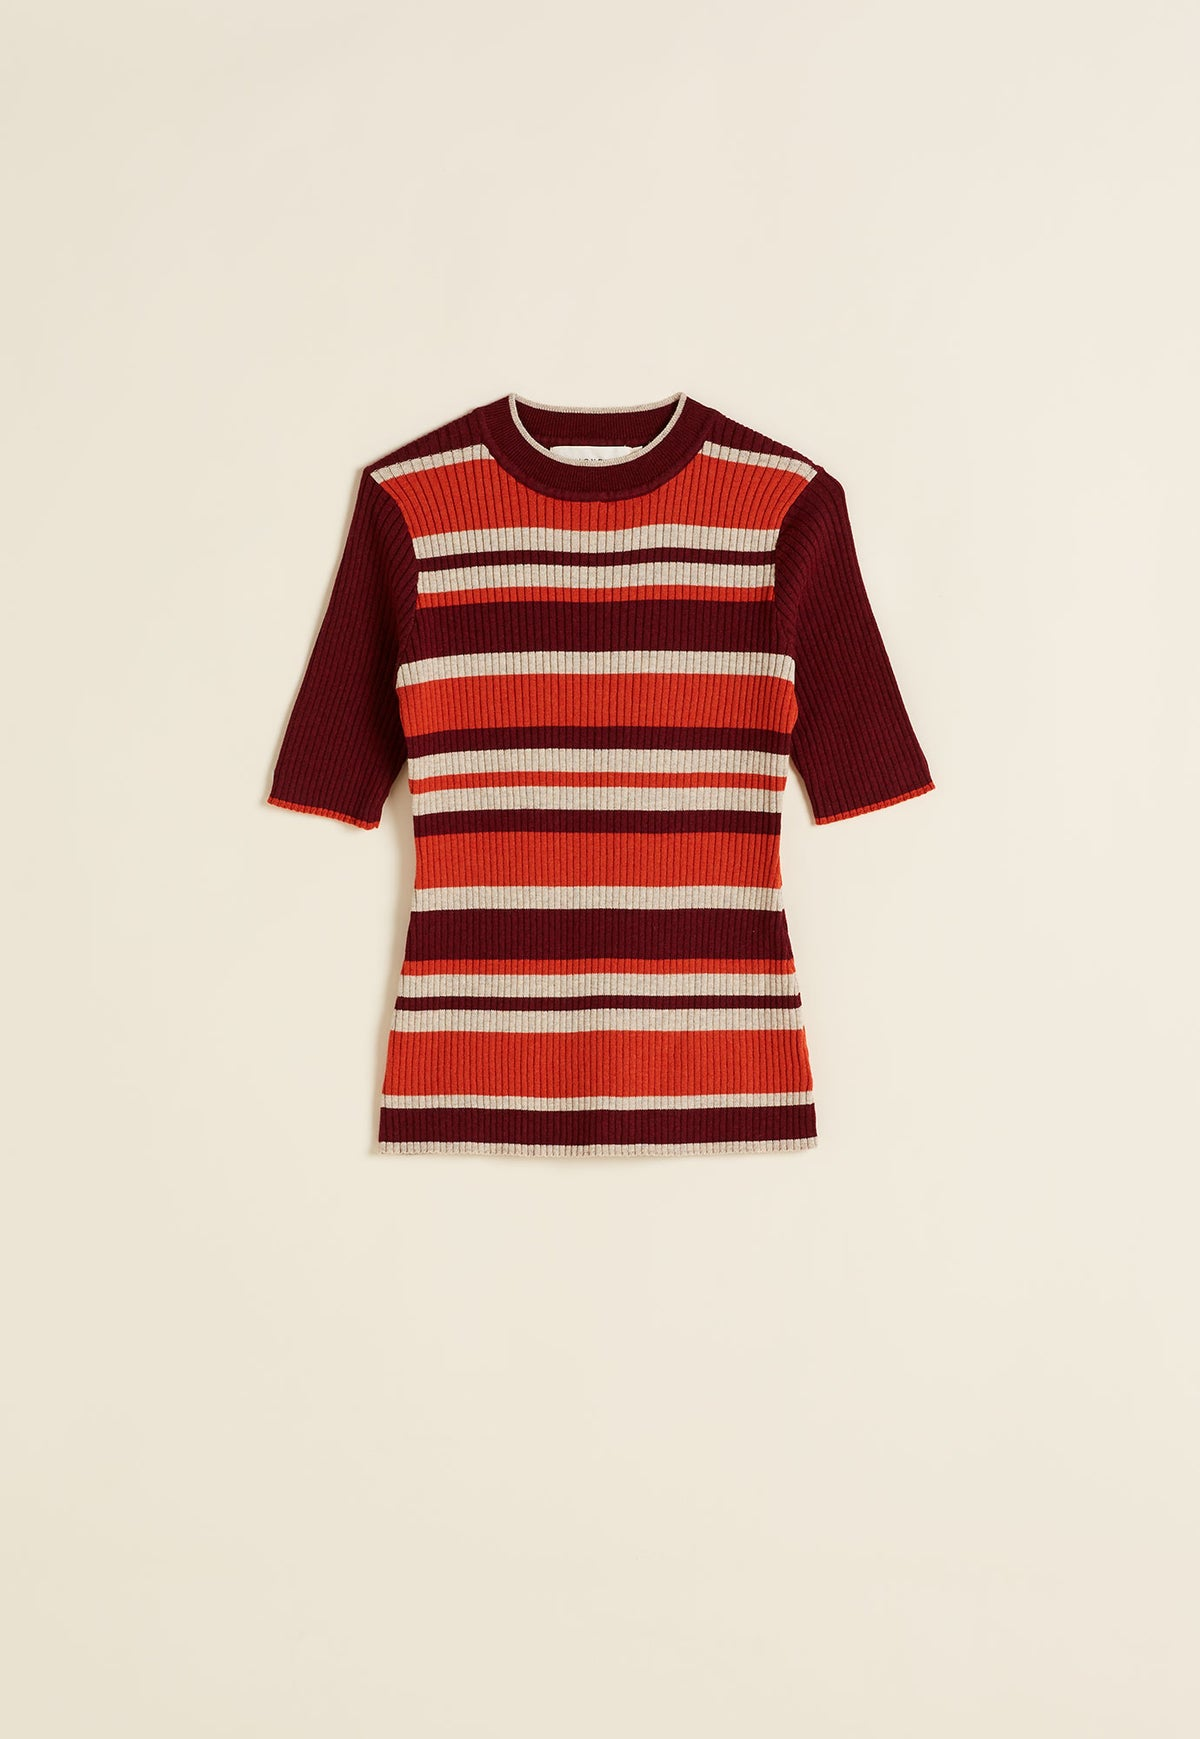 Rib Knit Short Sleeve - Dark Berry